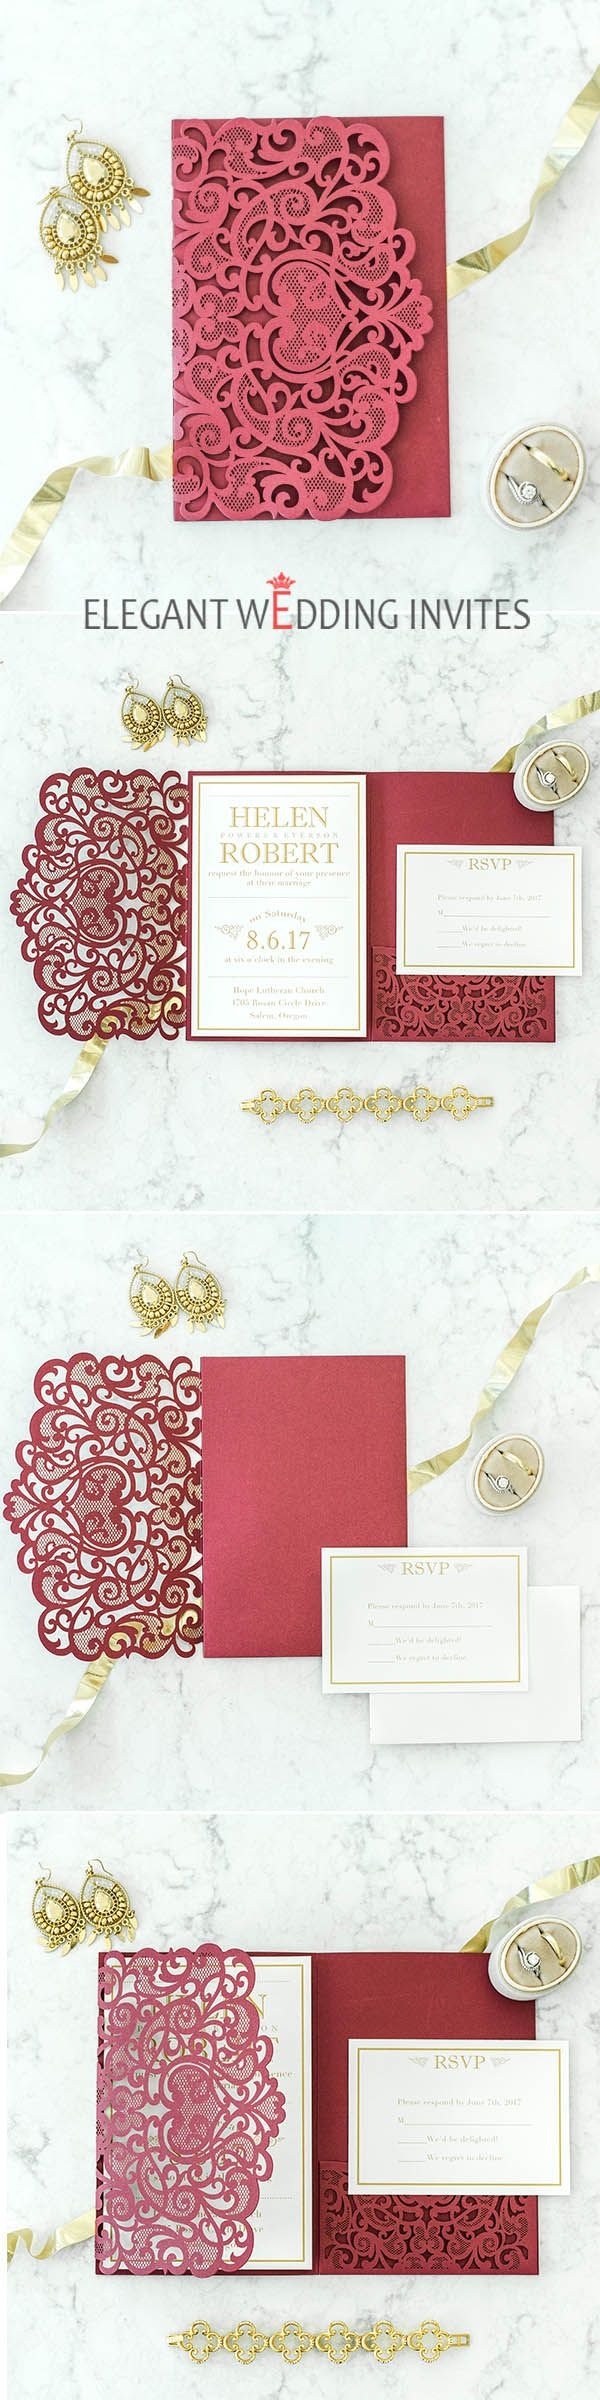 elegant wedding invites coupon codes%0A NewReleased Wedding Invitation Design and Matched Wedding Decor Ideas by    Laser cut wedding invitations  Laser cutting and Elegant